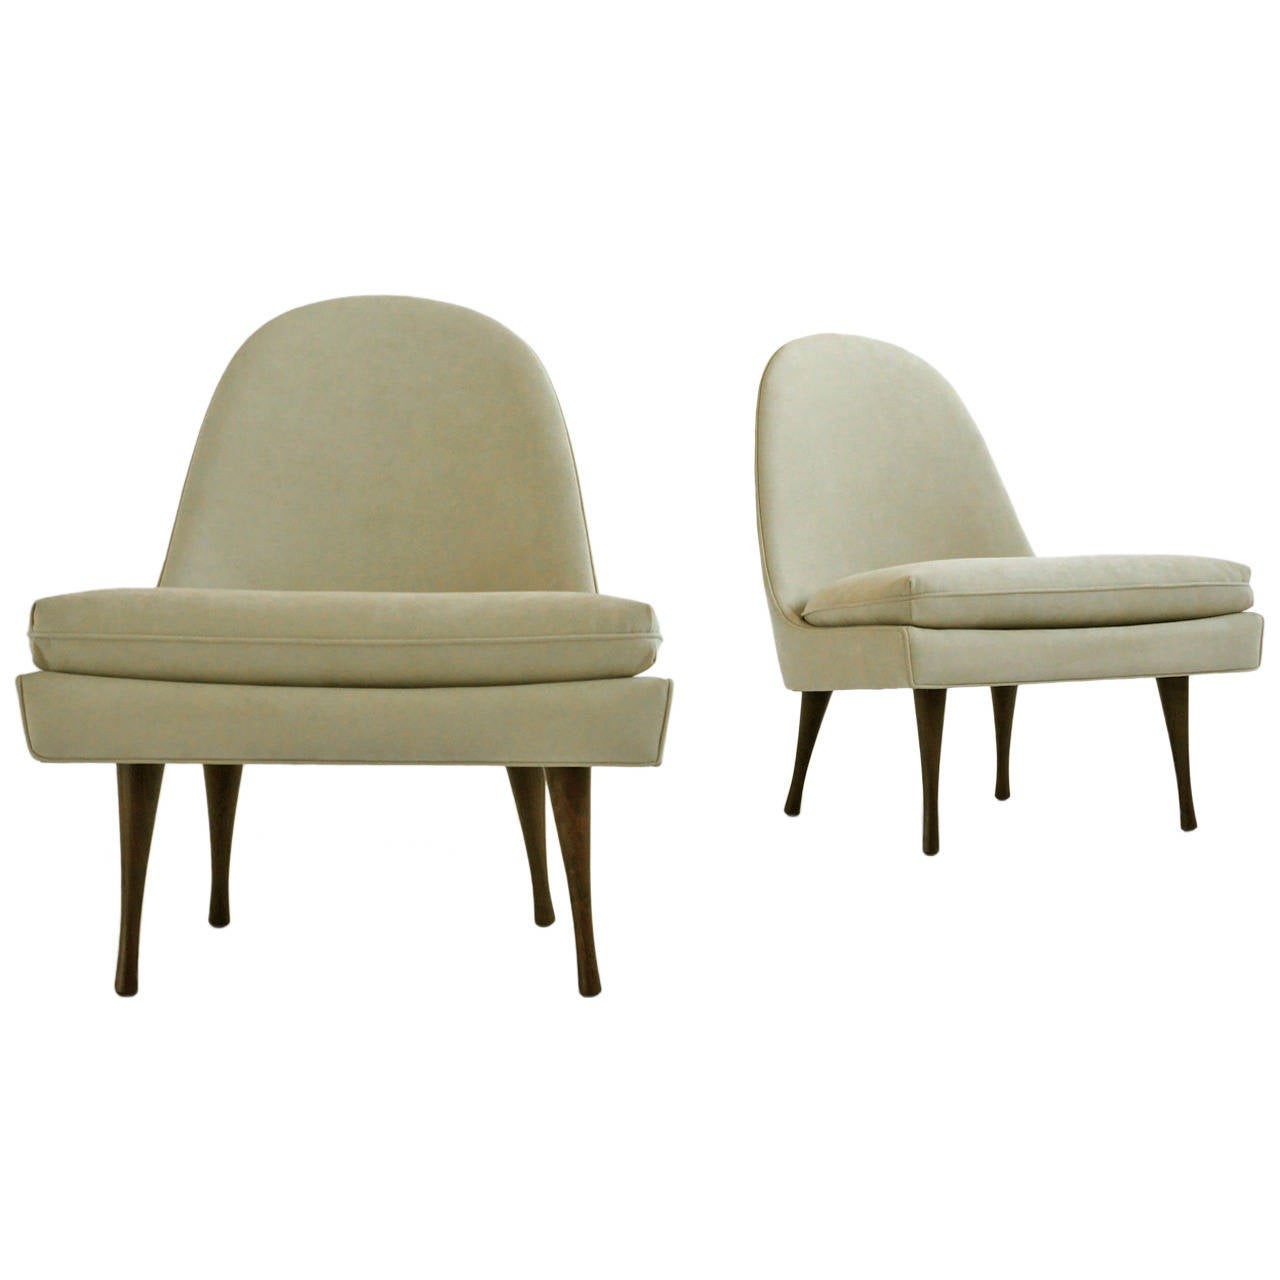 Paul McCobb Slipper Chairs for Widdi b at 1stdibs